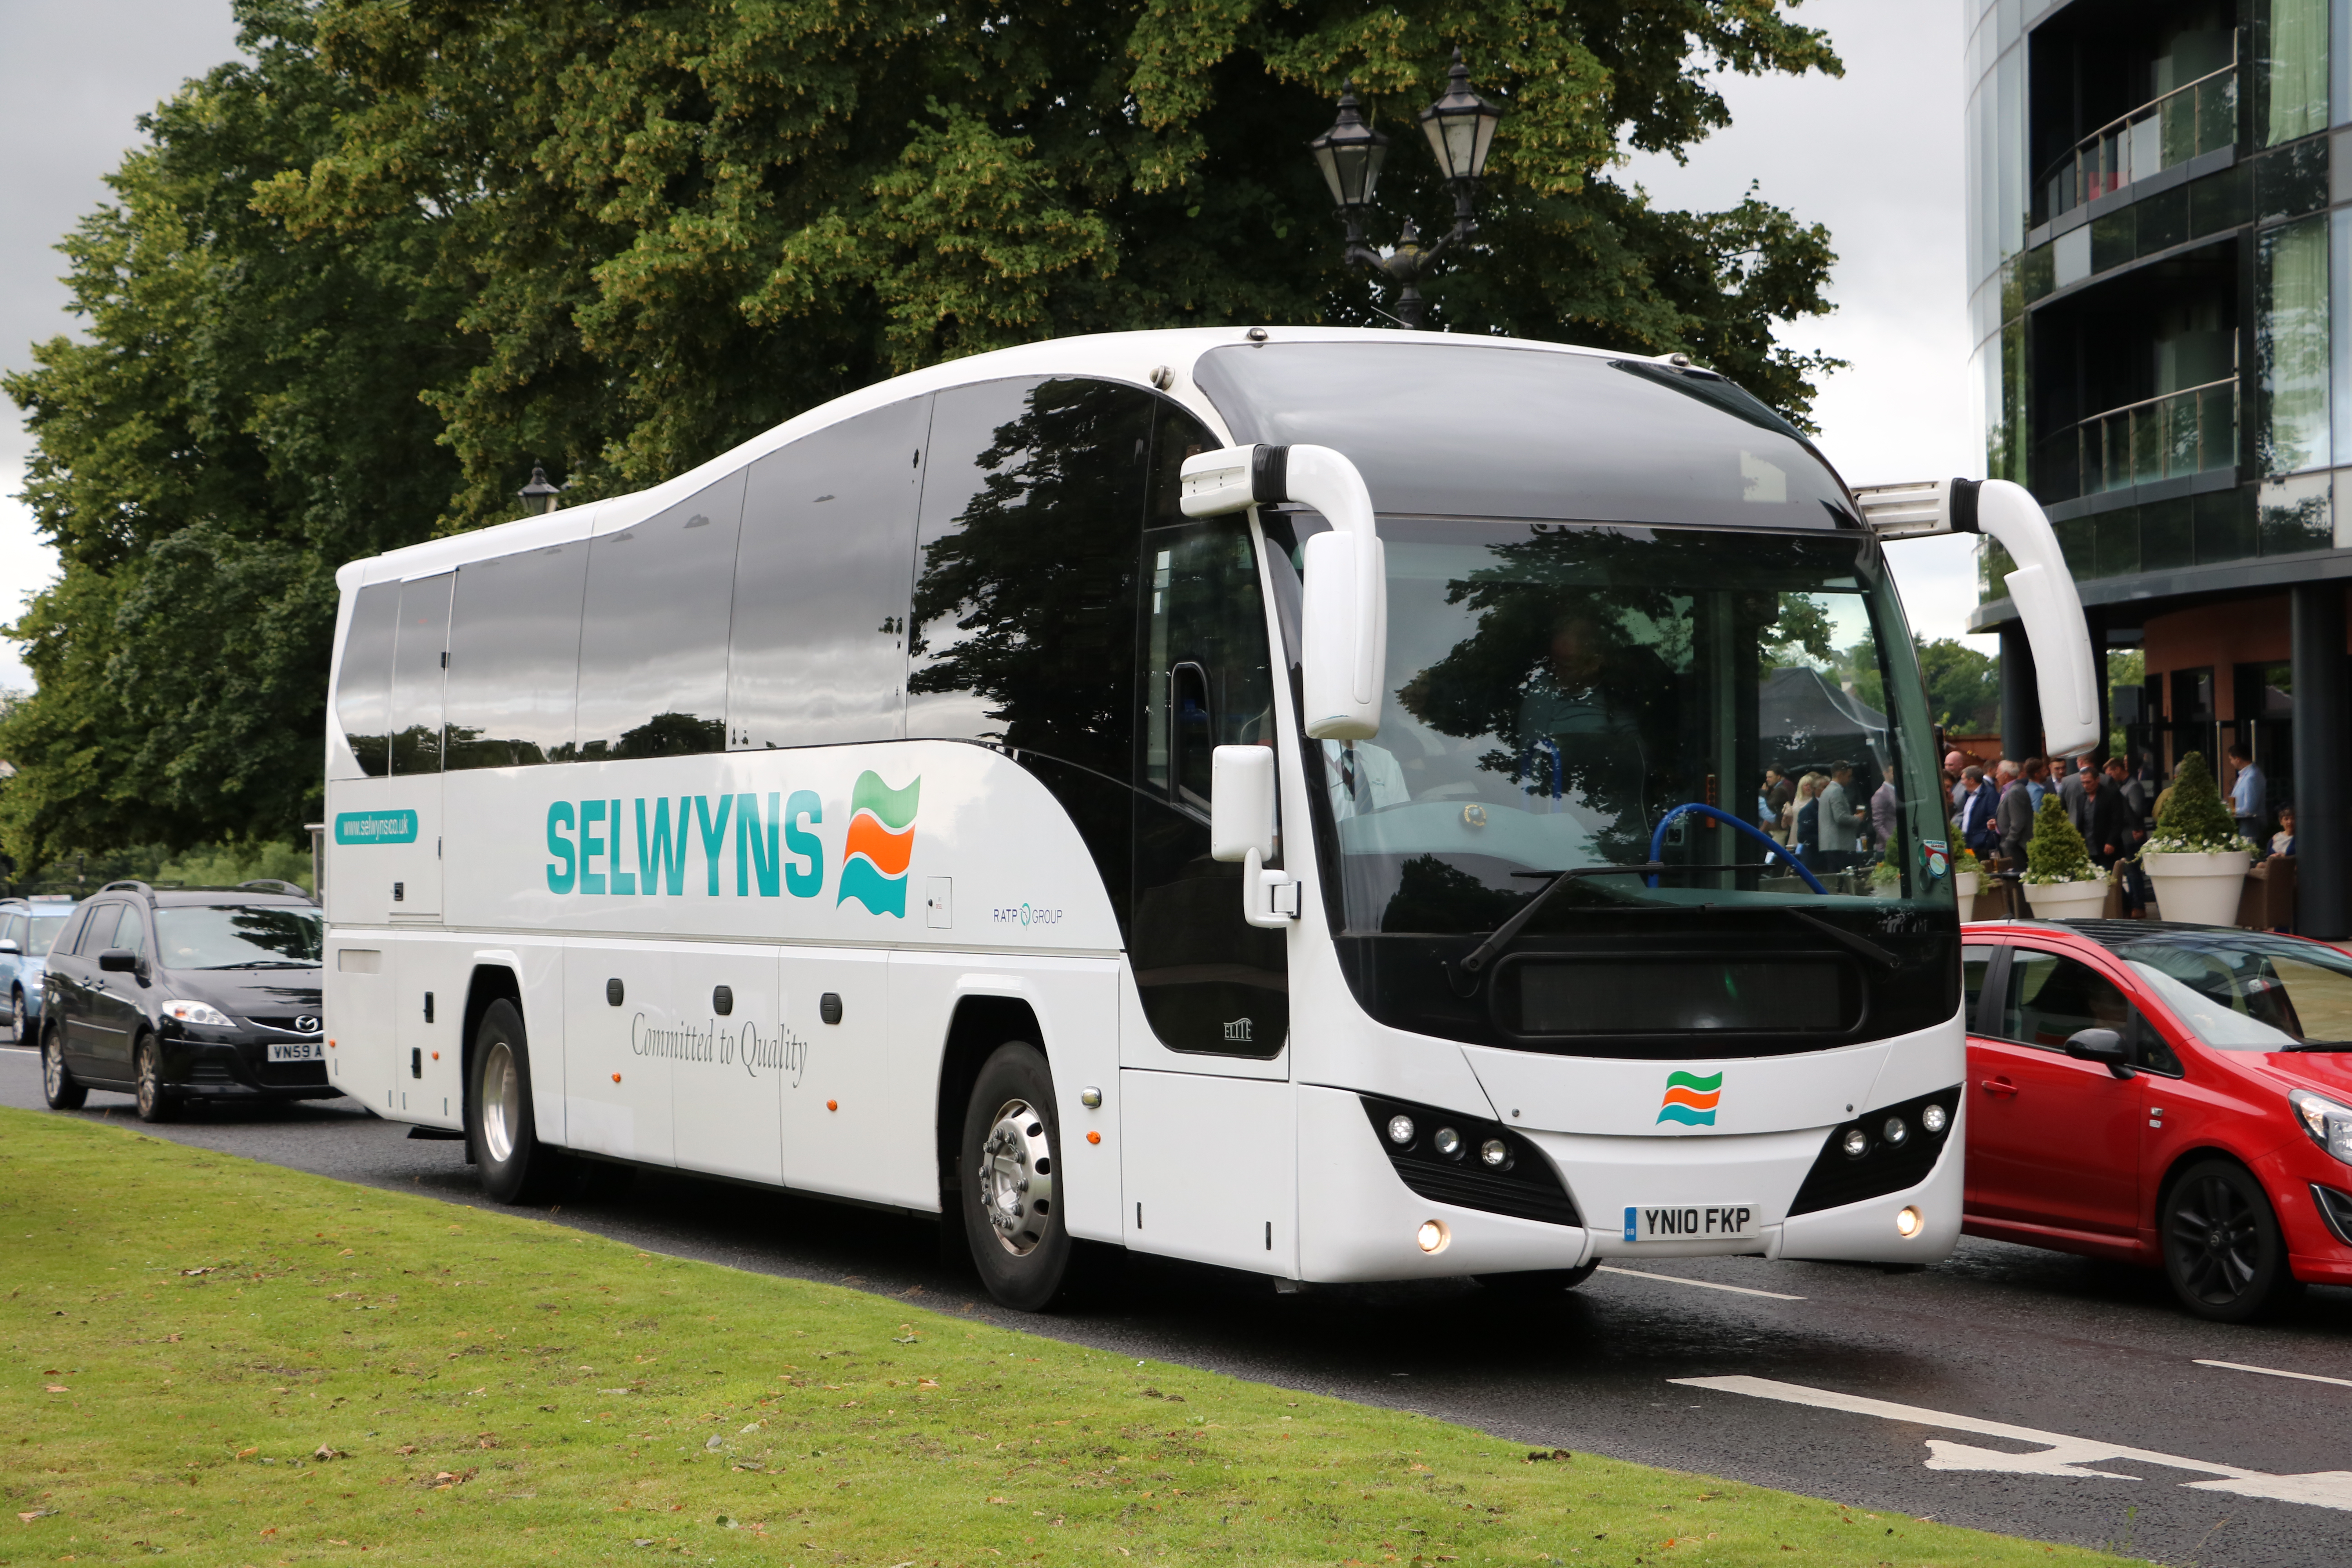 Selwyns Coach Hire